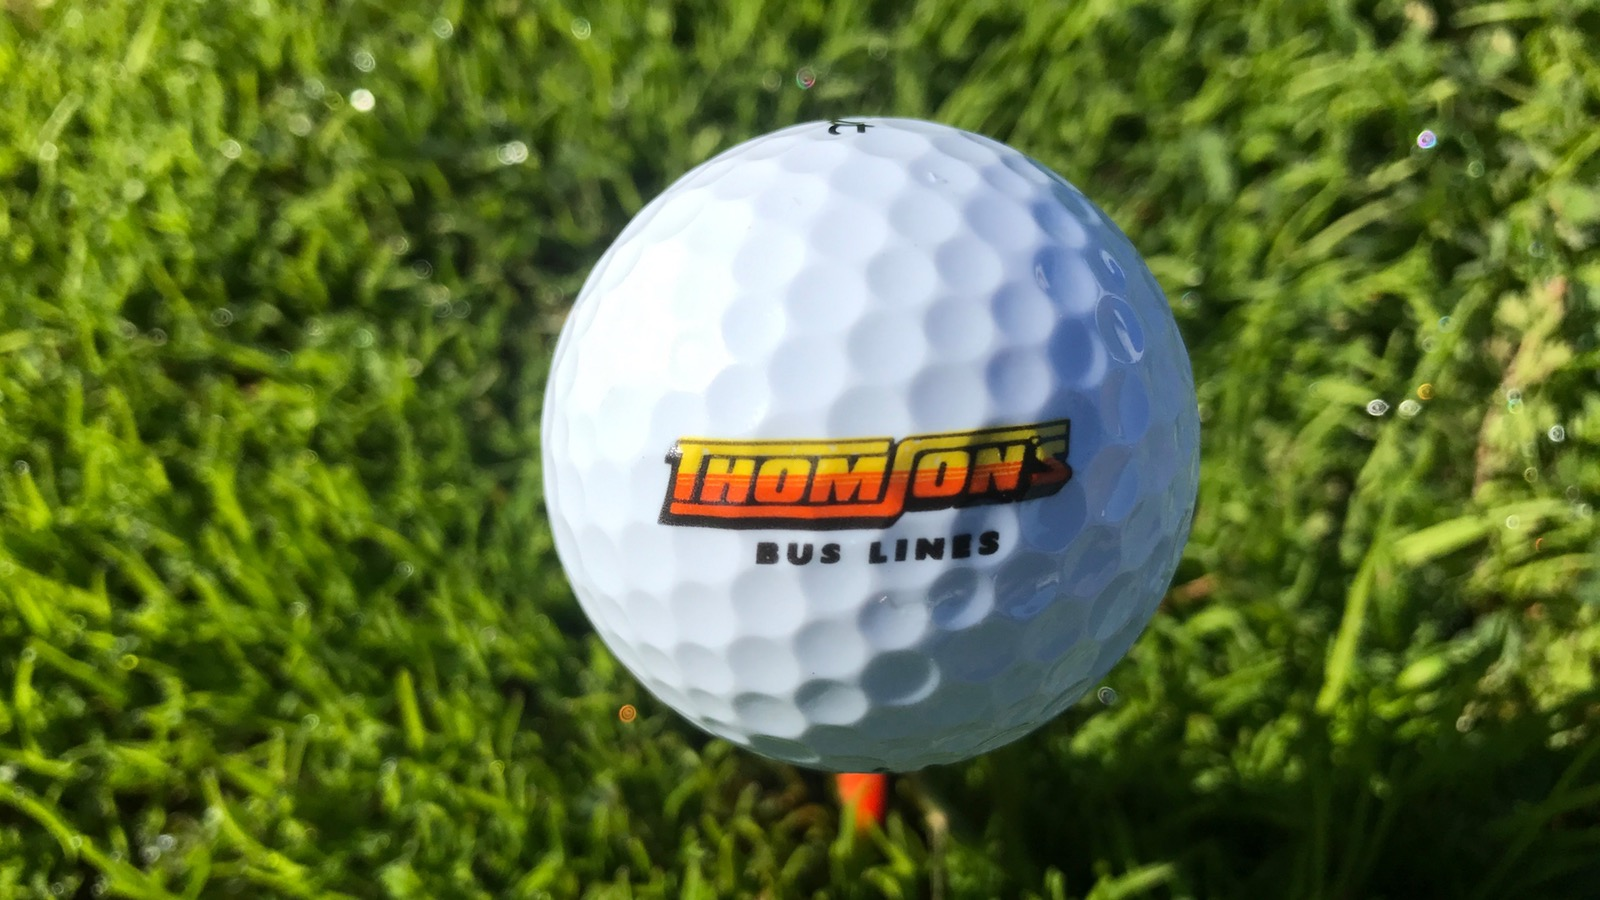 Thomson's Golf Ball